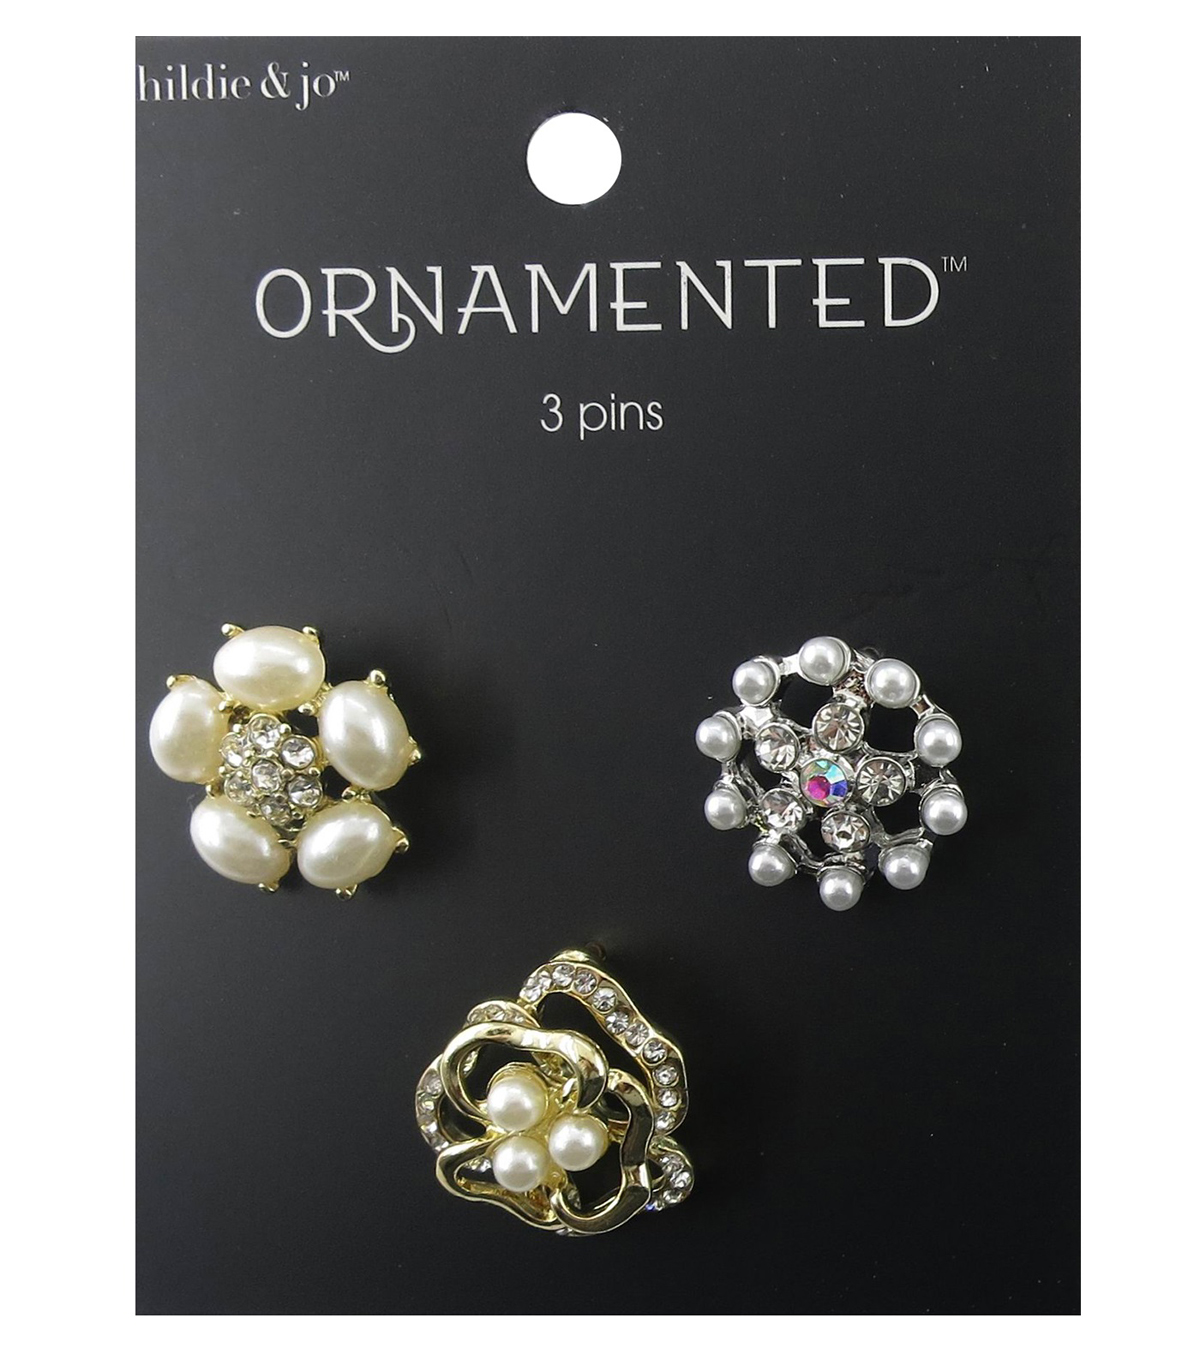 hildie & jo™ Ornamented 3 Pack Flowers Silver & Gold Pins